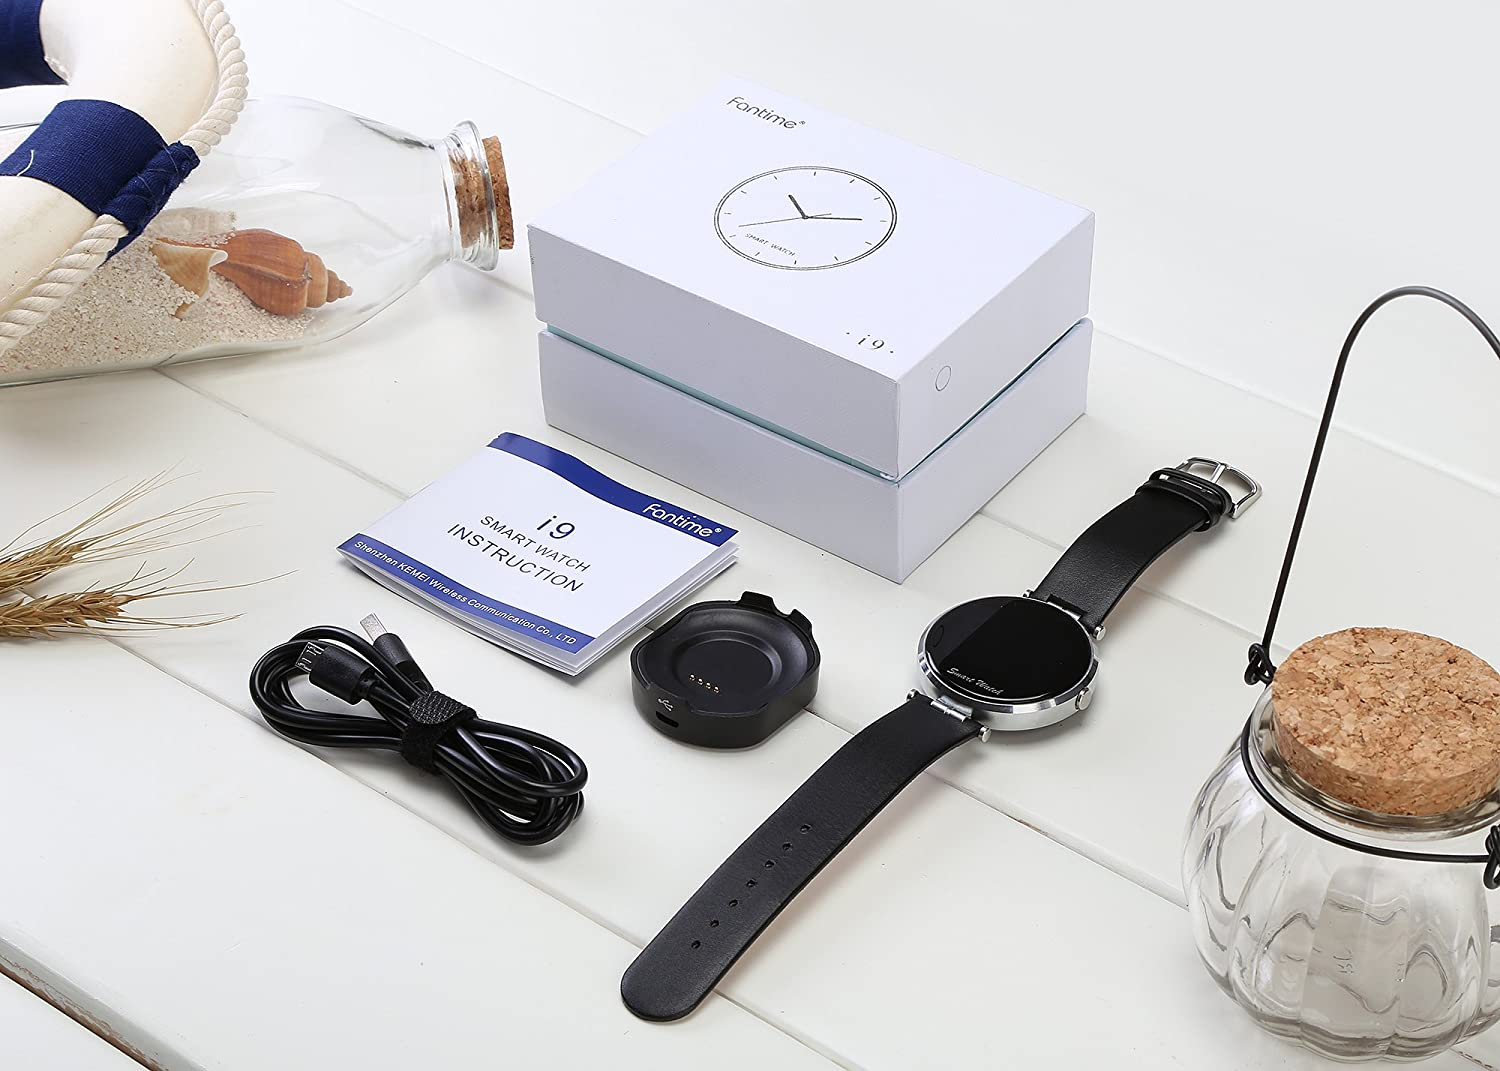 Dial de reloj de muñeca reloj inteligente teléfono inalámbrico Bluetooth Smartwatches de pantalla para iPhone y Android I9 by fantime: Amazon.es: ...